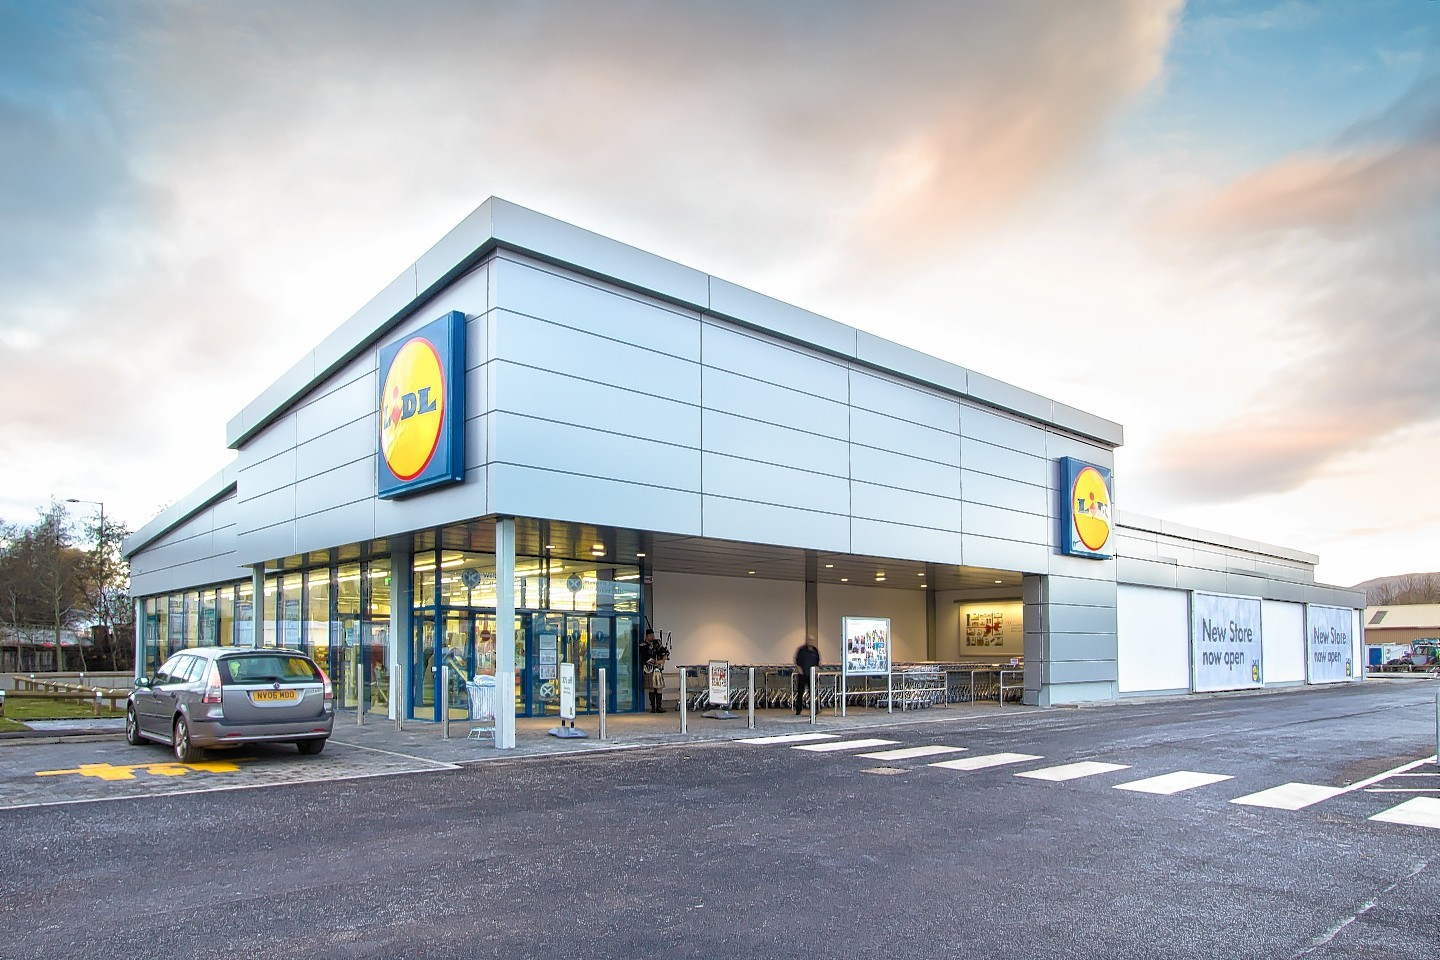 This is how a new Lidl store might look